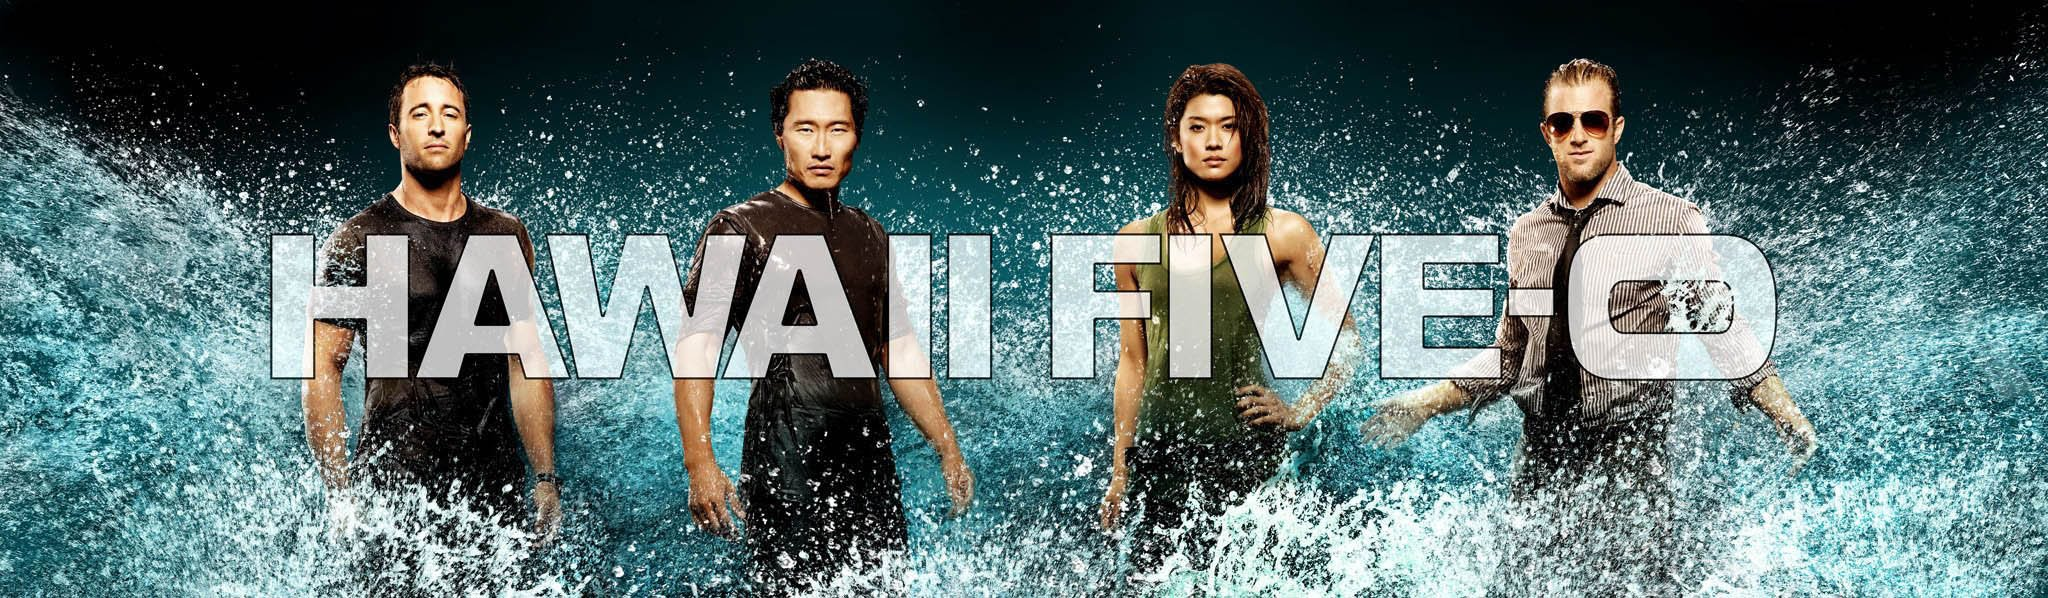 Hawaii Five-0 TV Series 2010